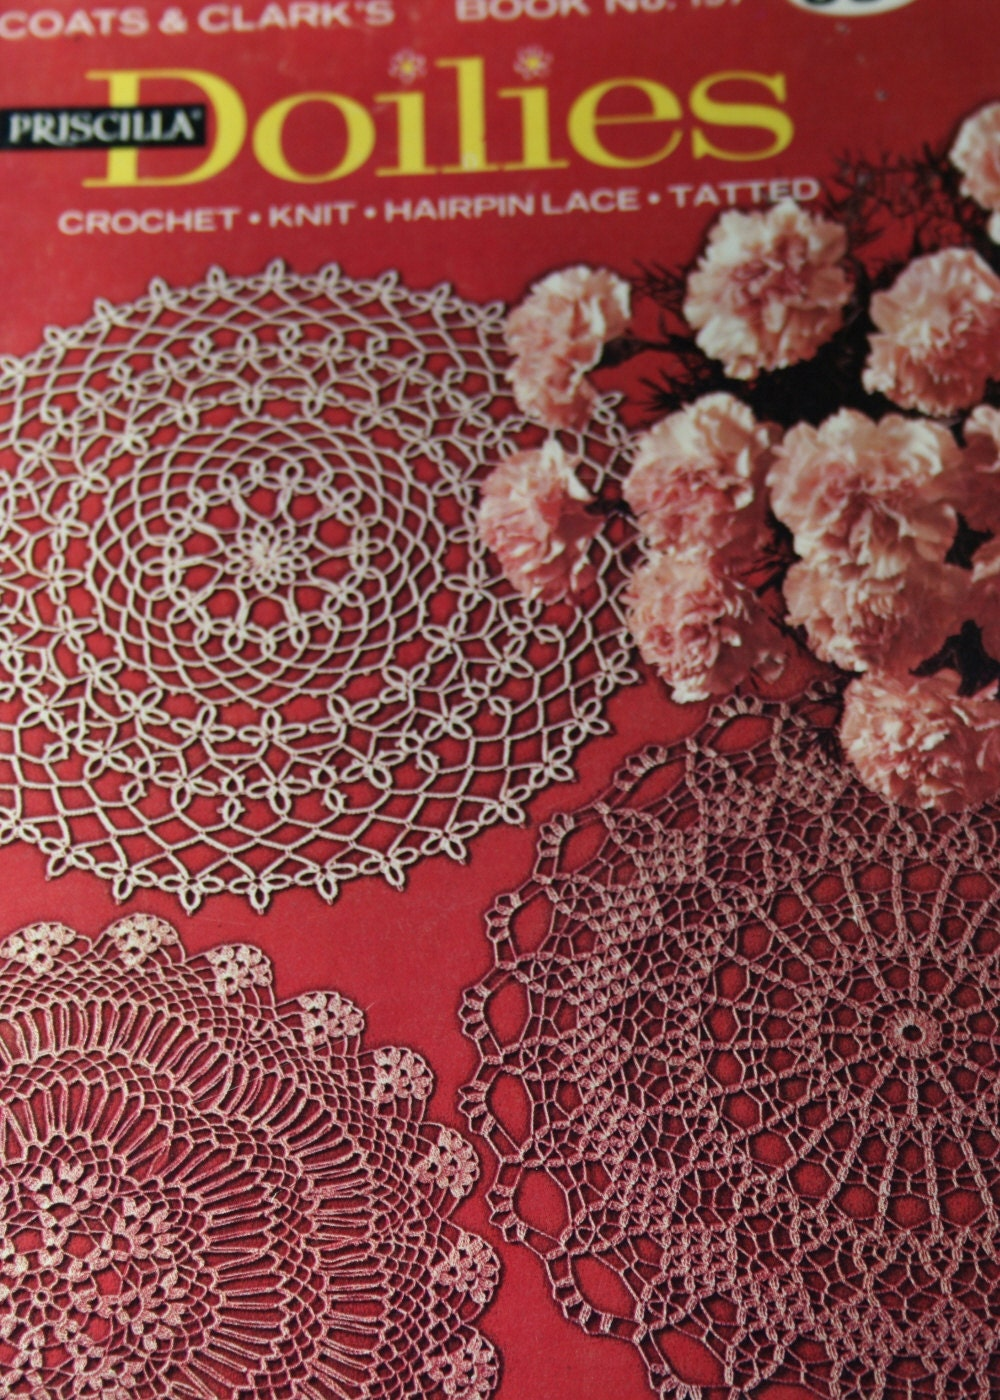 Doilies Patterns Crochet Knit Hairpin Lace Tatted Coats and Clark\'s ...